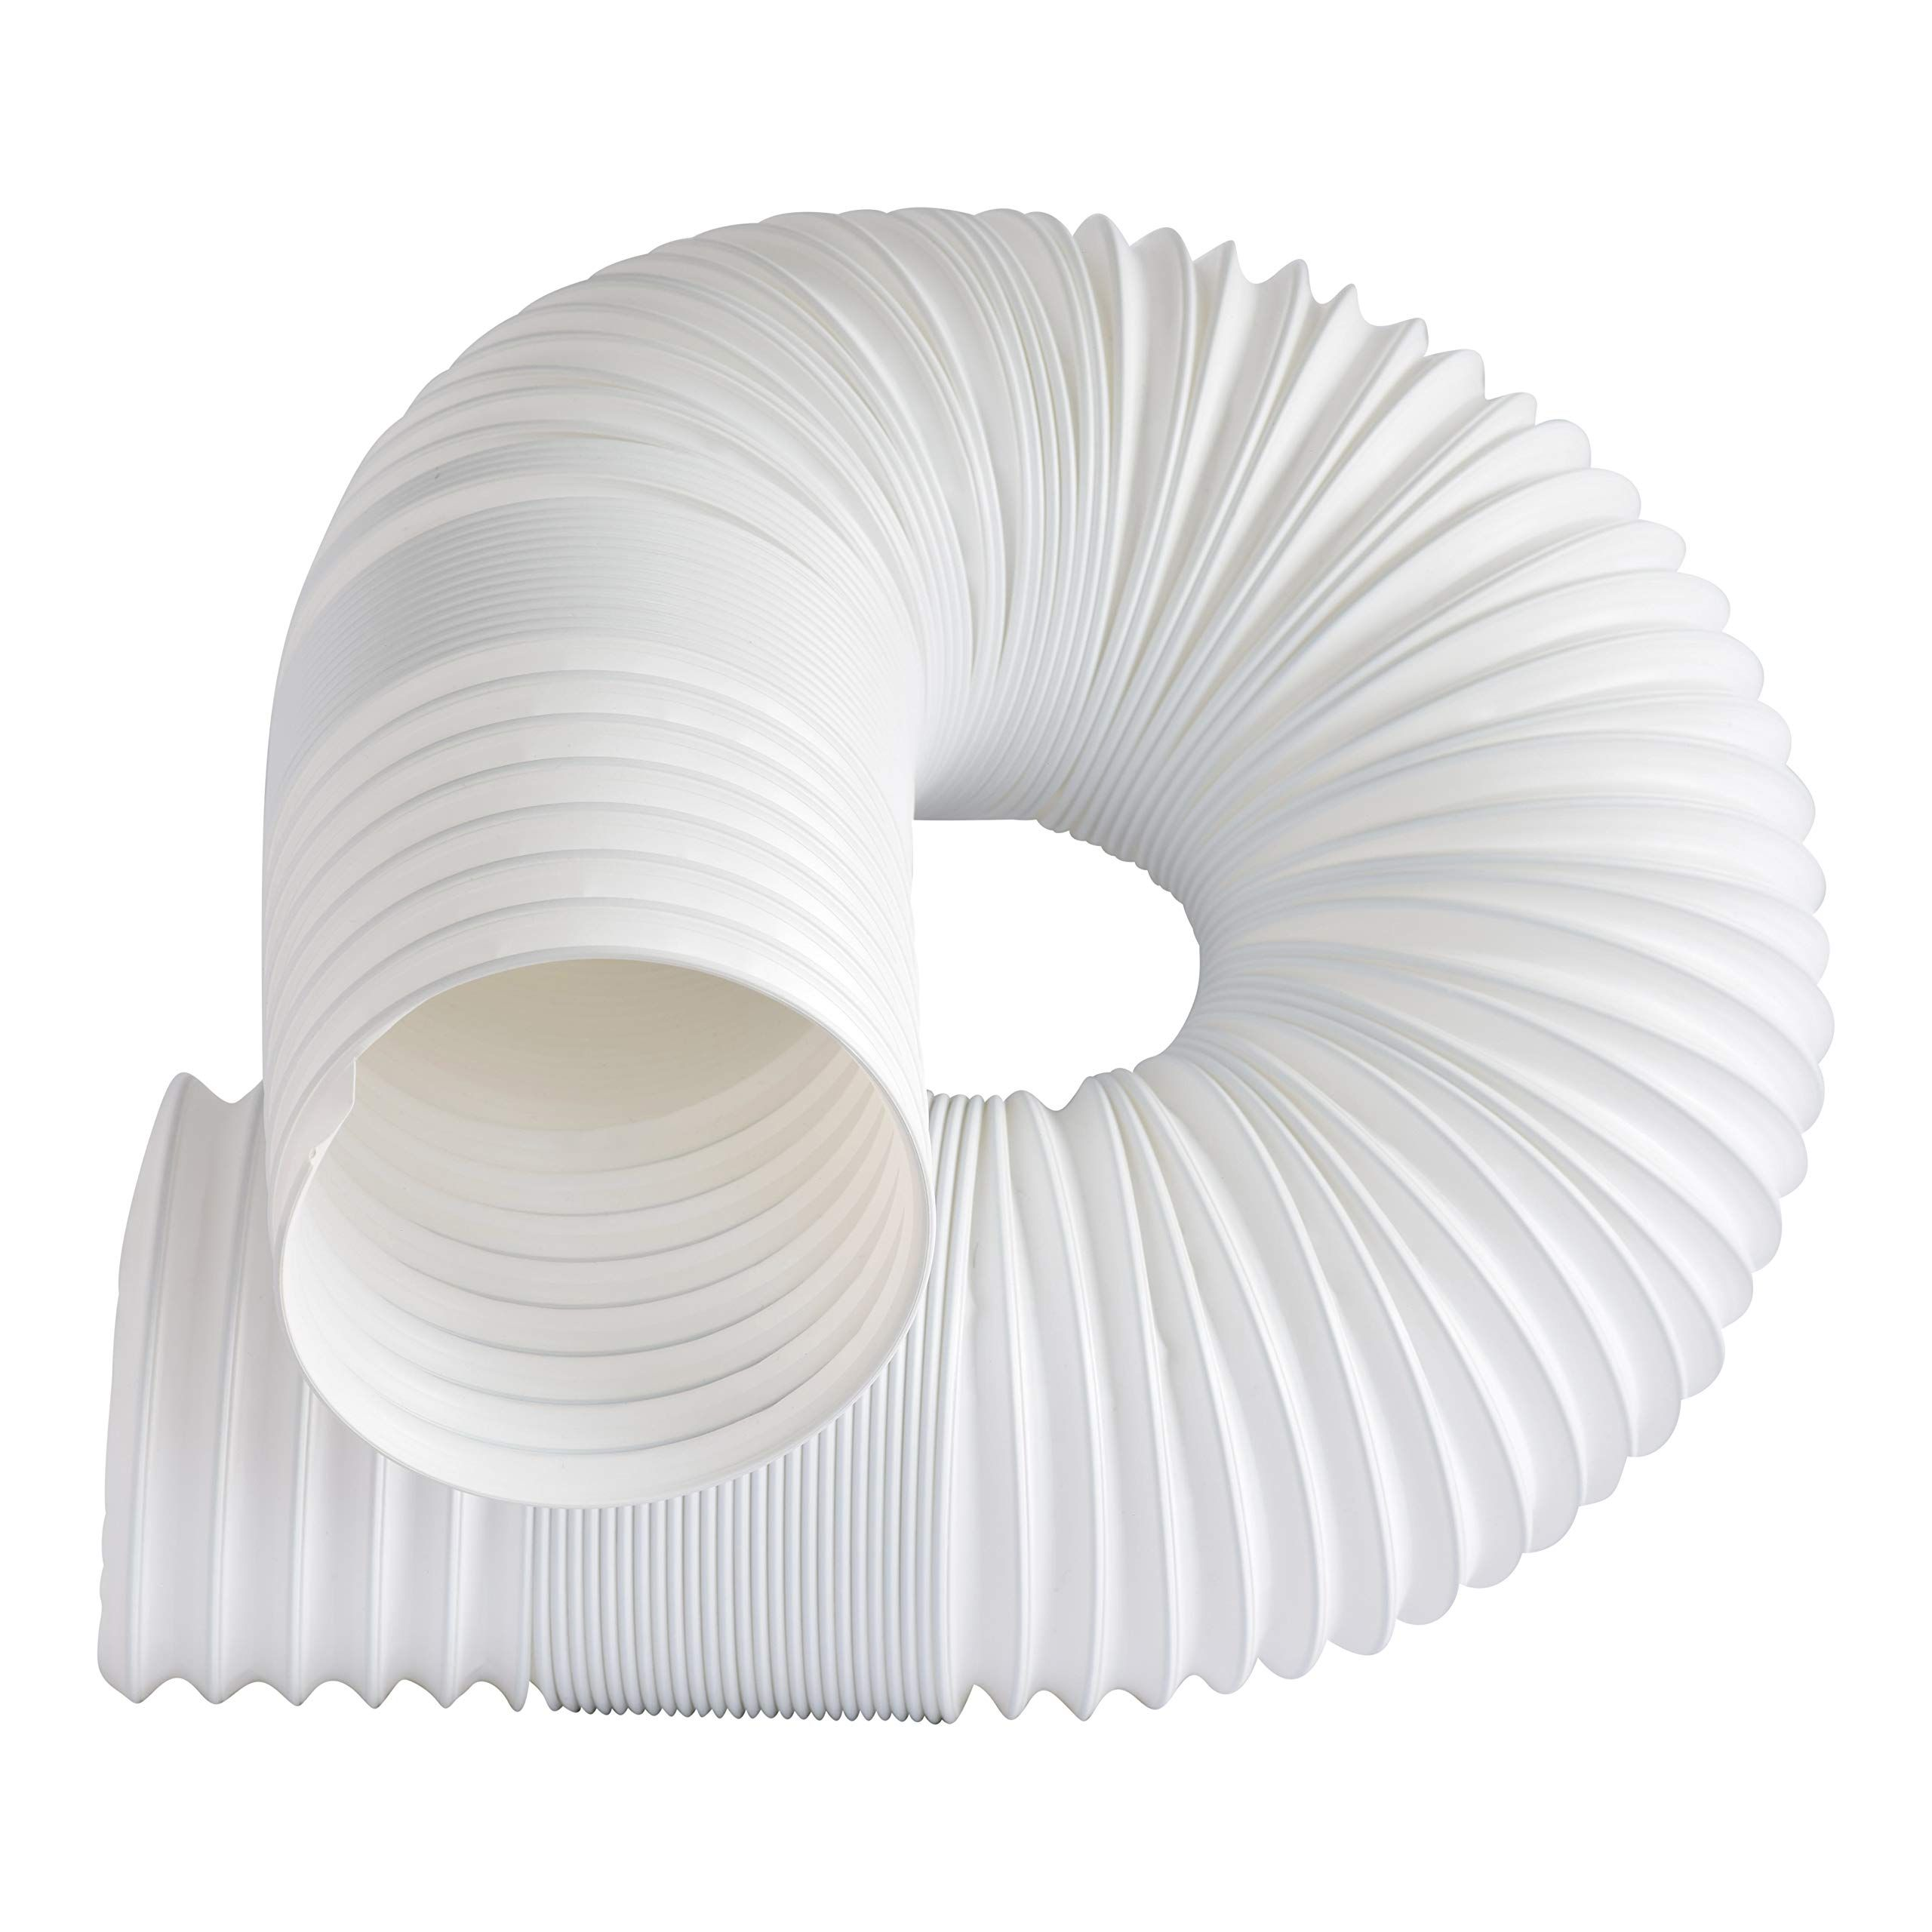 Dalridge Portable Ac Exhaust Hose 5 Inch Diameter Counter Clockwise Threading In White To View Further For This Portable Ac Outdoor Decor Air Conditioner